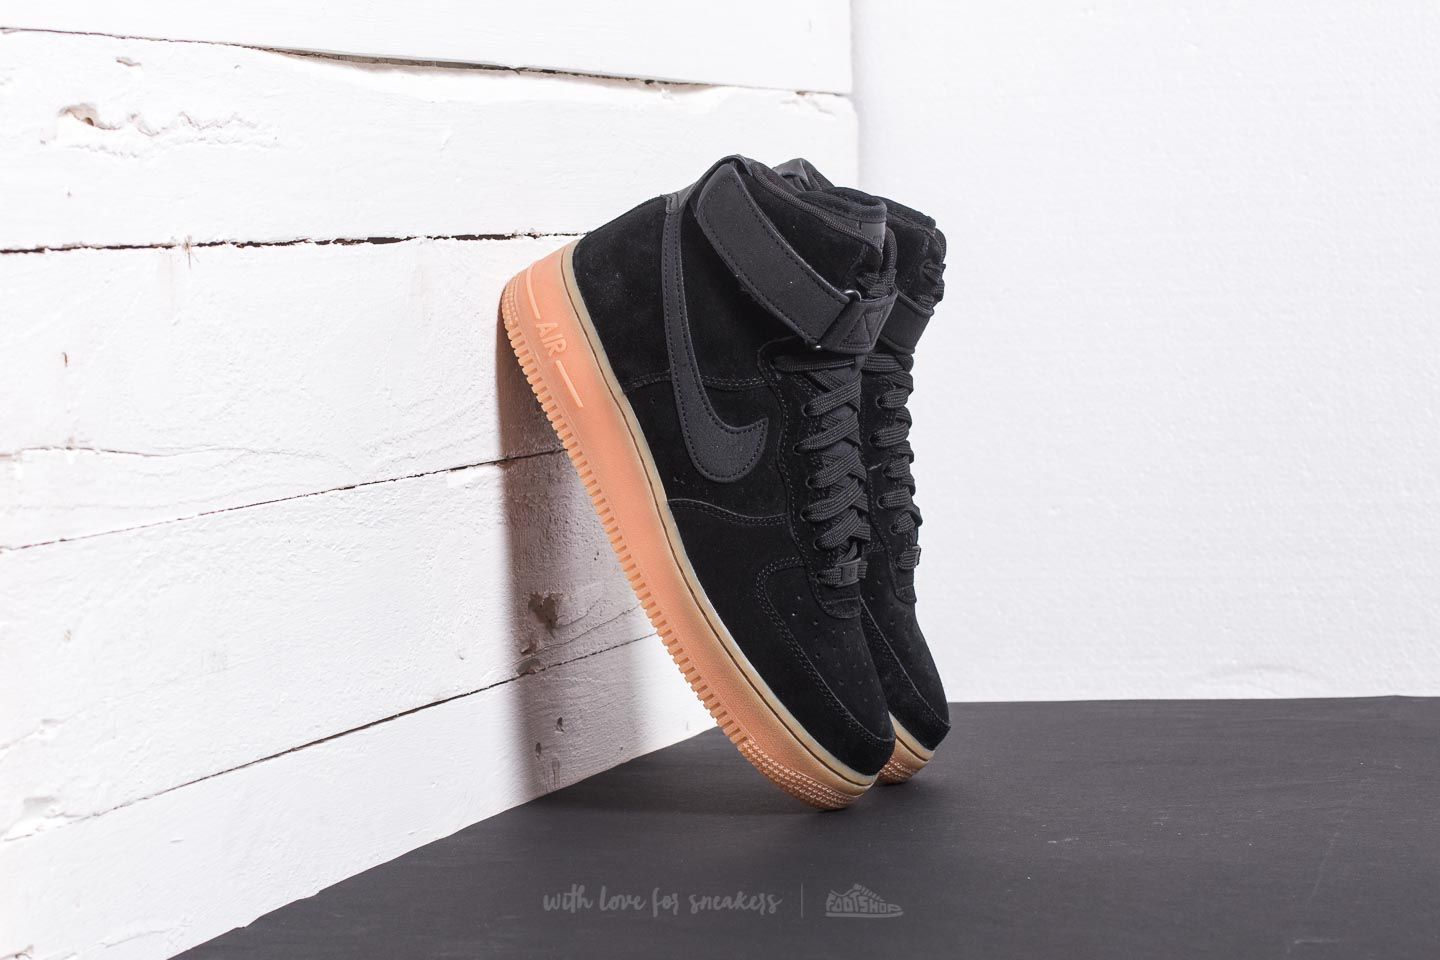 Nike Air Force 1 High '07 LV8 Suede Black/ Black-Gum Med Brown ...